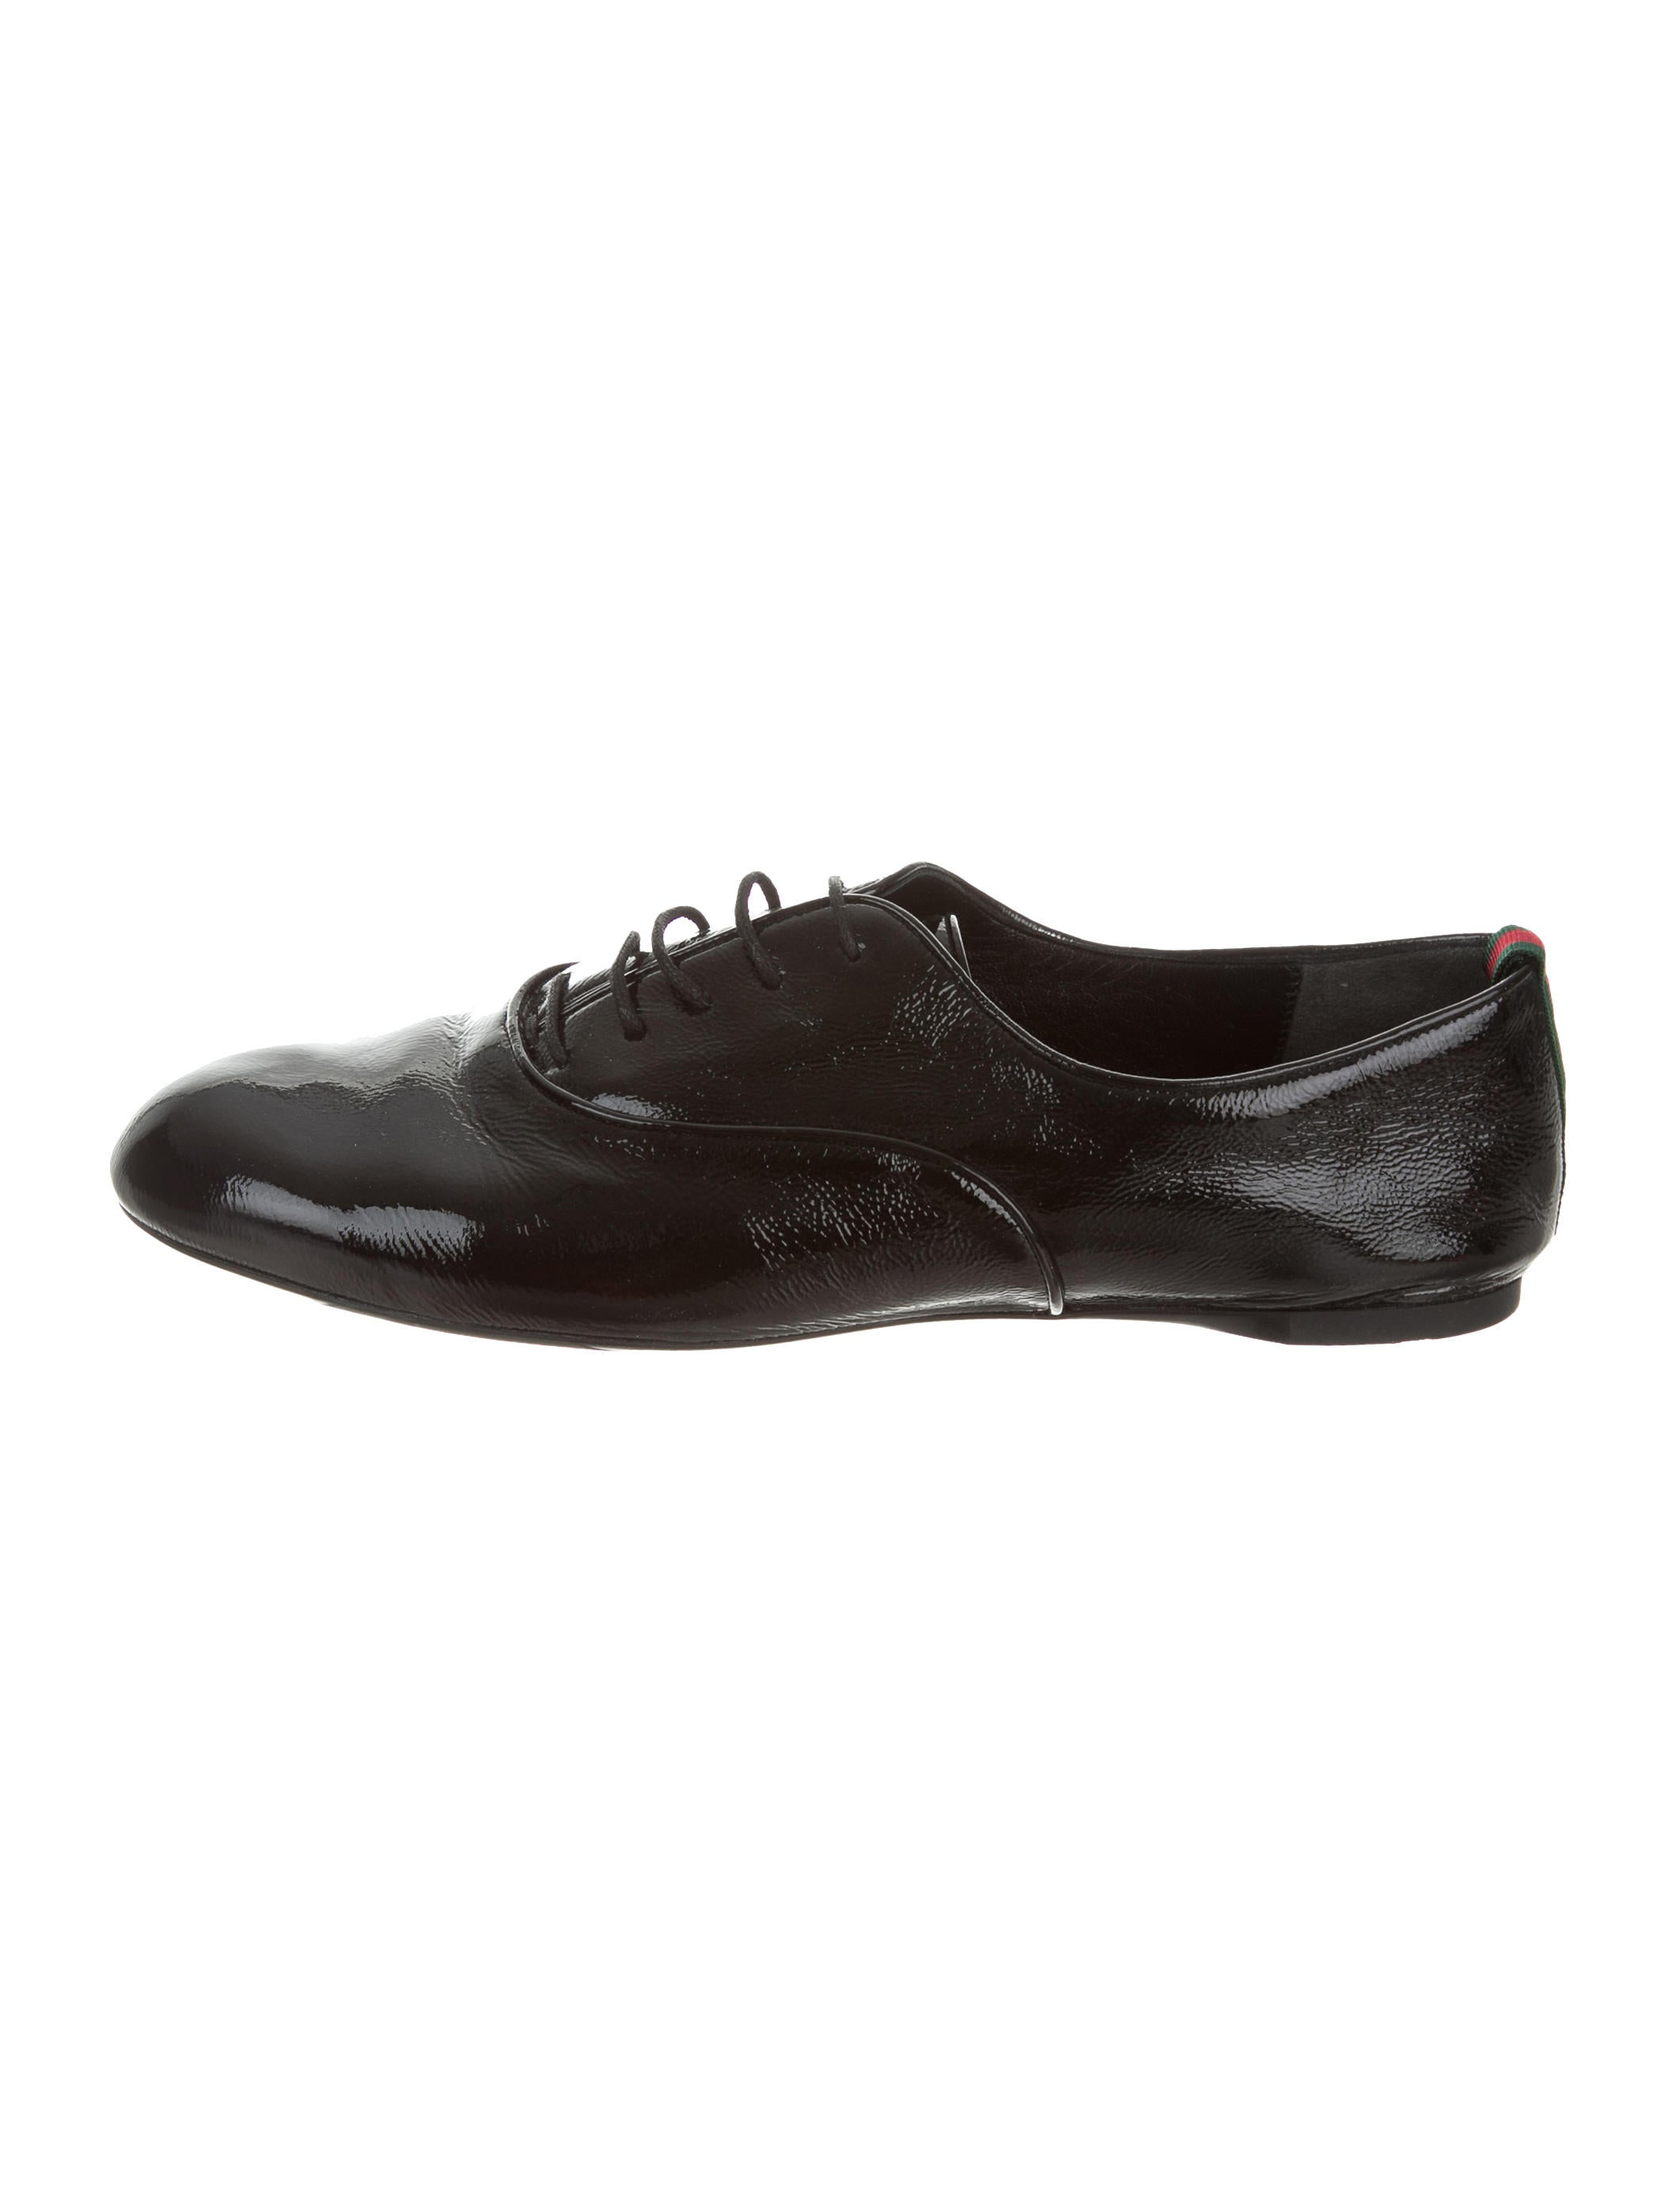 Moustache Store crafts impressive collections of chic dress shoes that add a touch of luxury to any formal or business ensemble. Each pair is crafted from high quality leather in timeless silhouettes, with unique twists and surprising details that elevate.